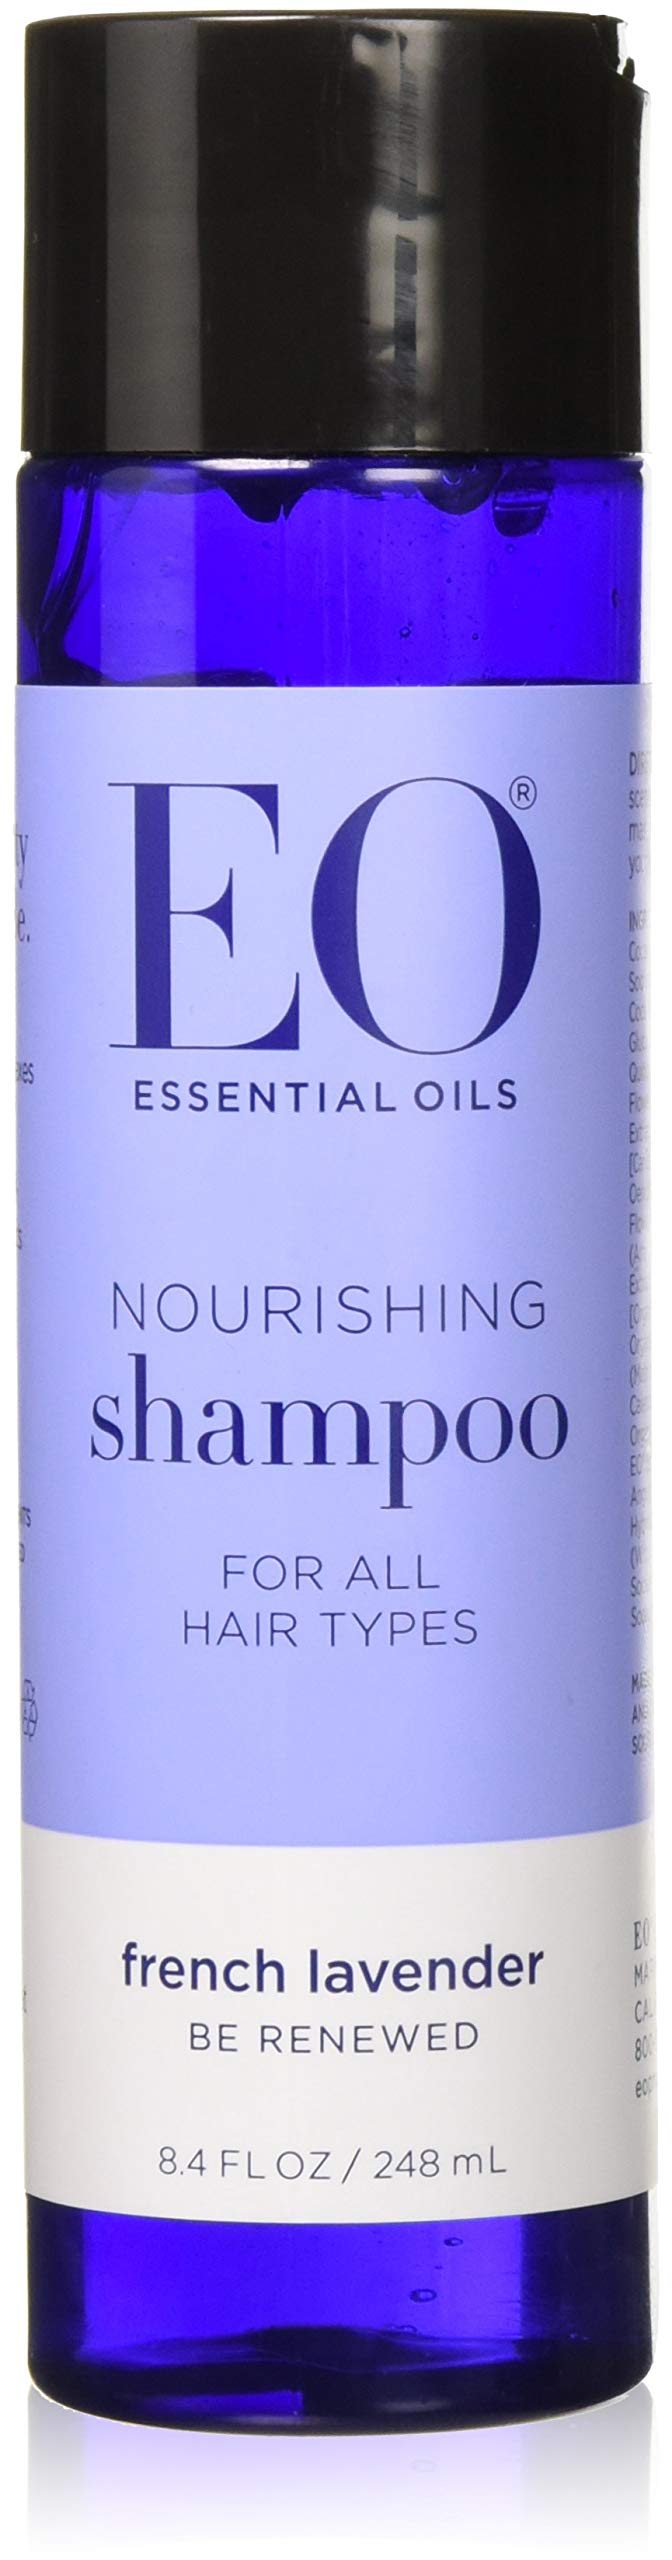 EO Pure Performance Botanical Shampoo, Everyday Leave-in or Rinse, French Lavender, French Lavender, 8.4 Ounce (Pack of 3)